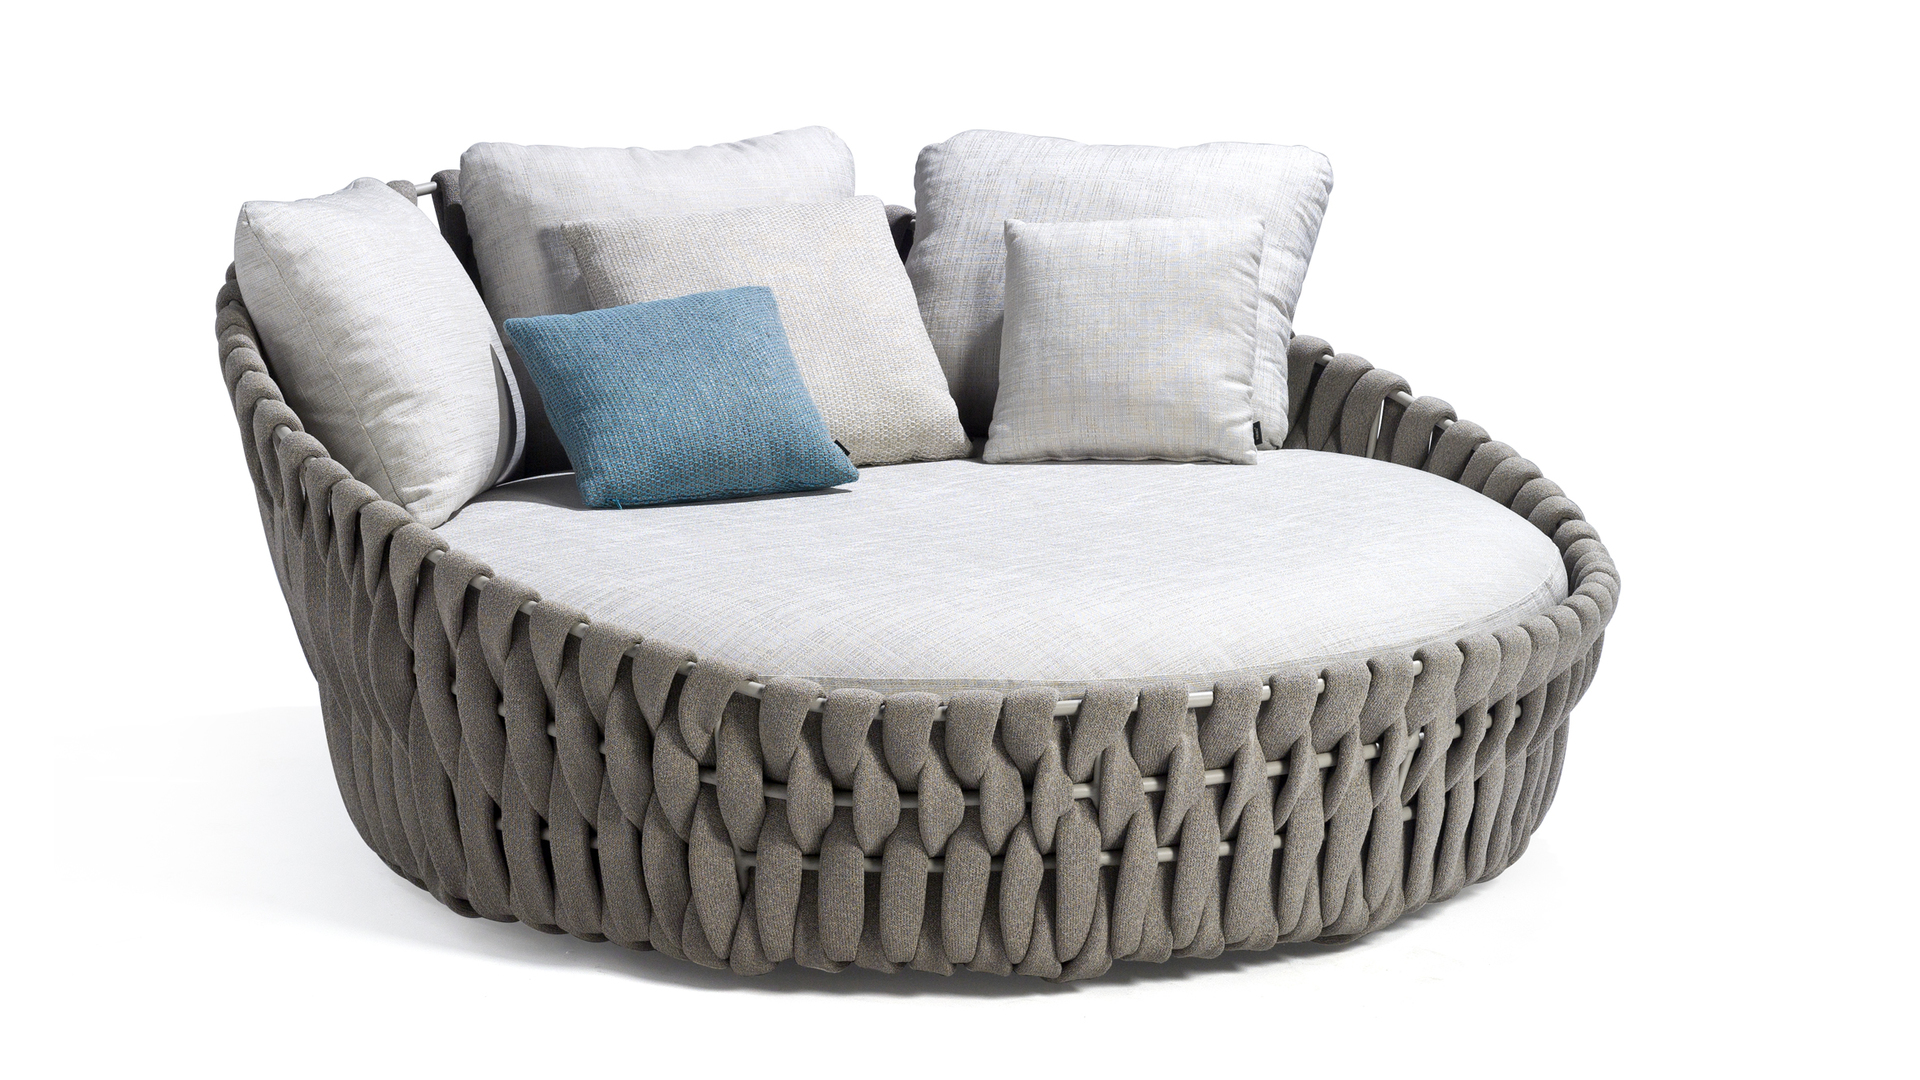 Tosca daybed deco 3D.jpg